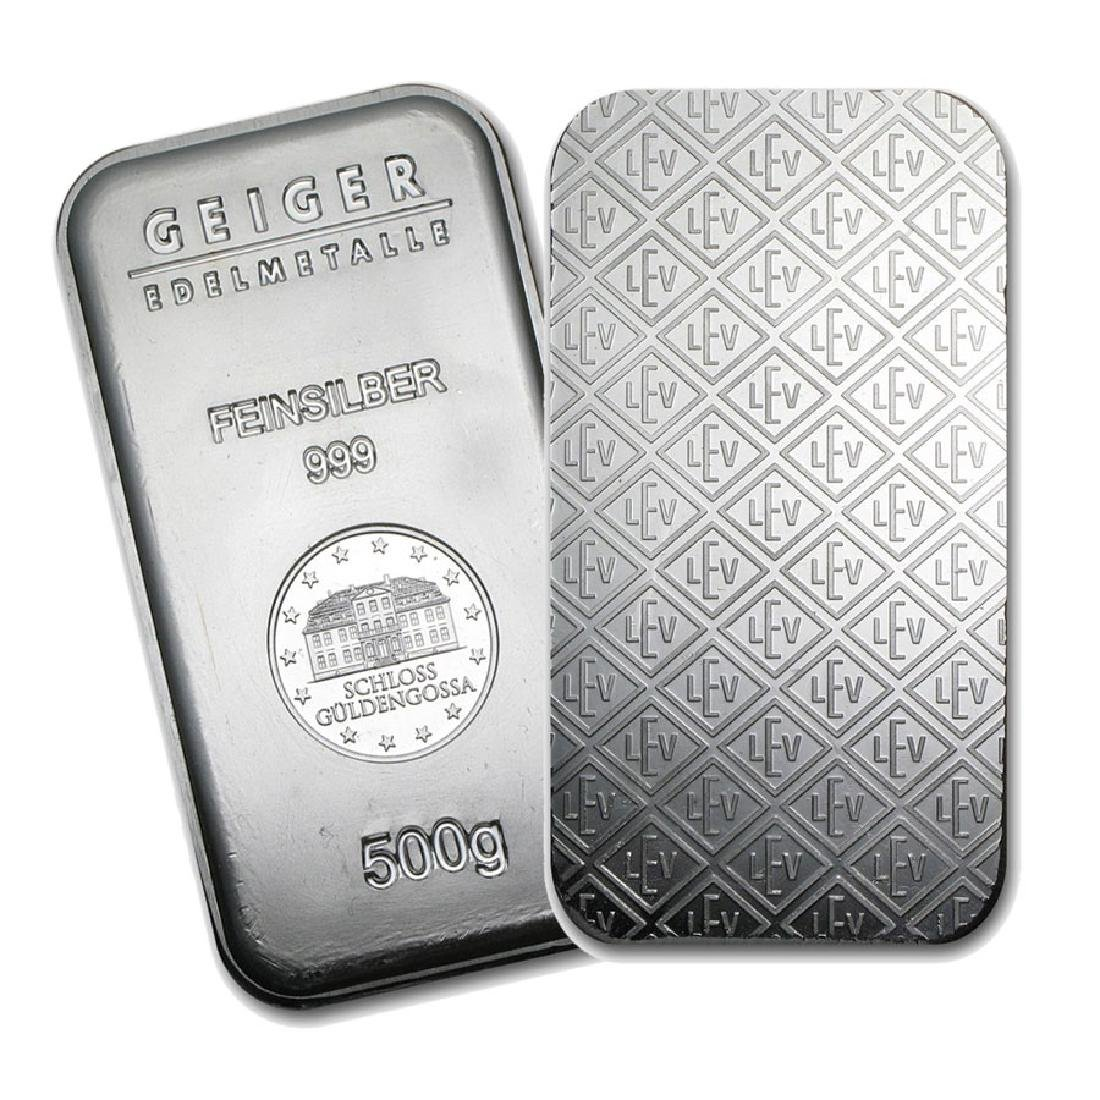 One piece 500 gram 0.999 Fine Silver Bar Geiger